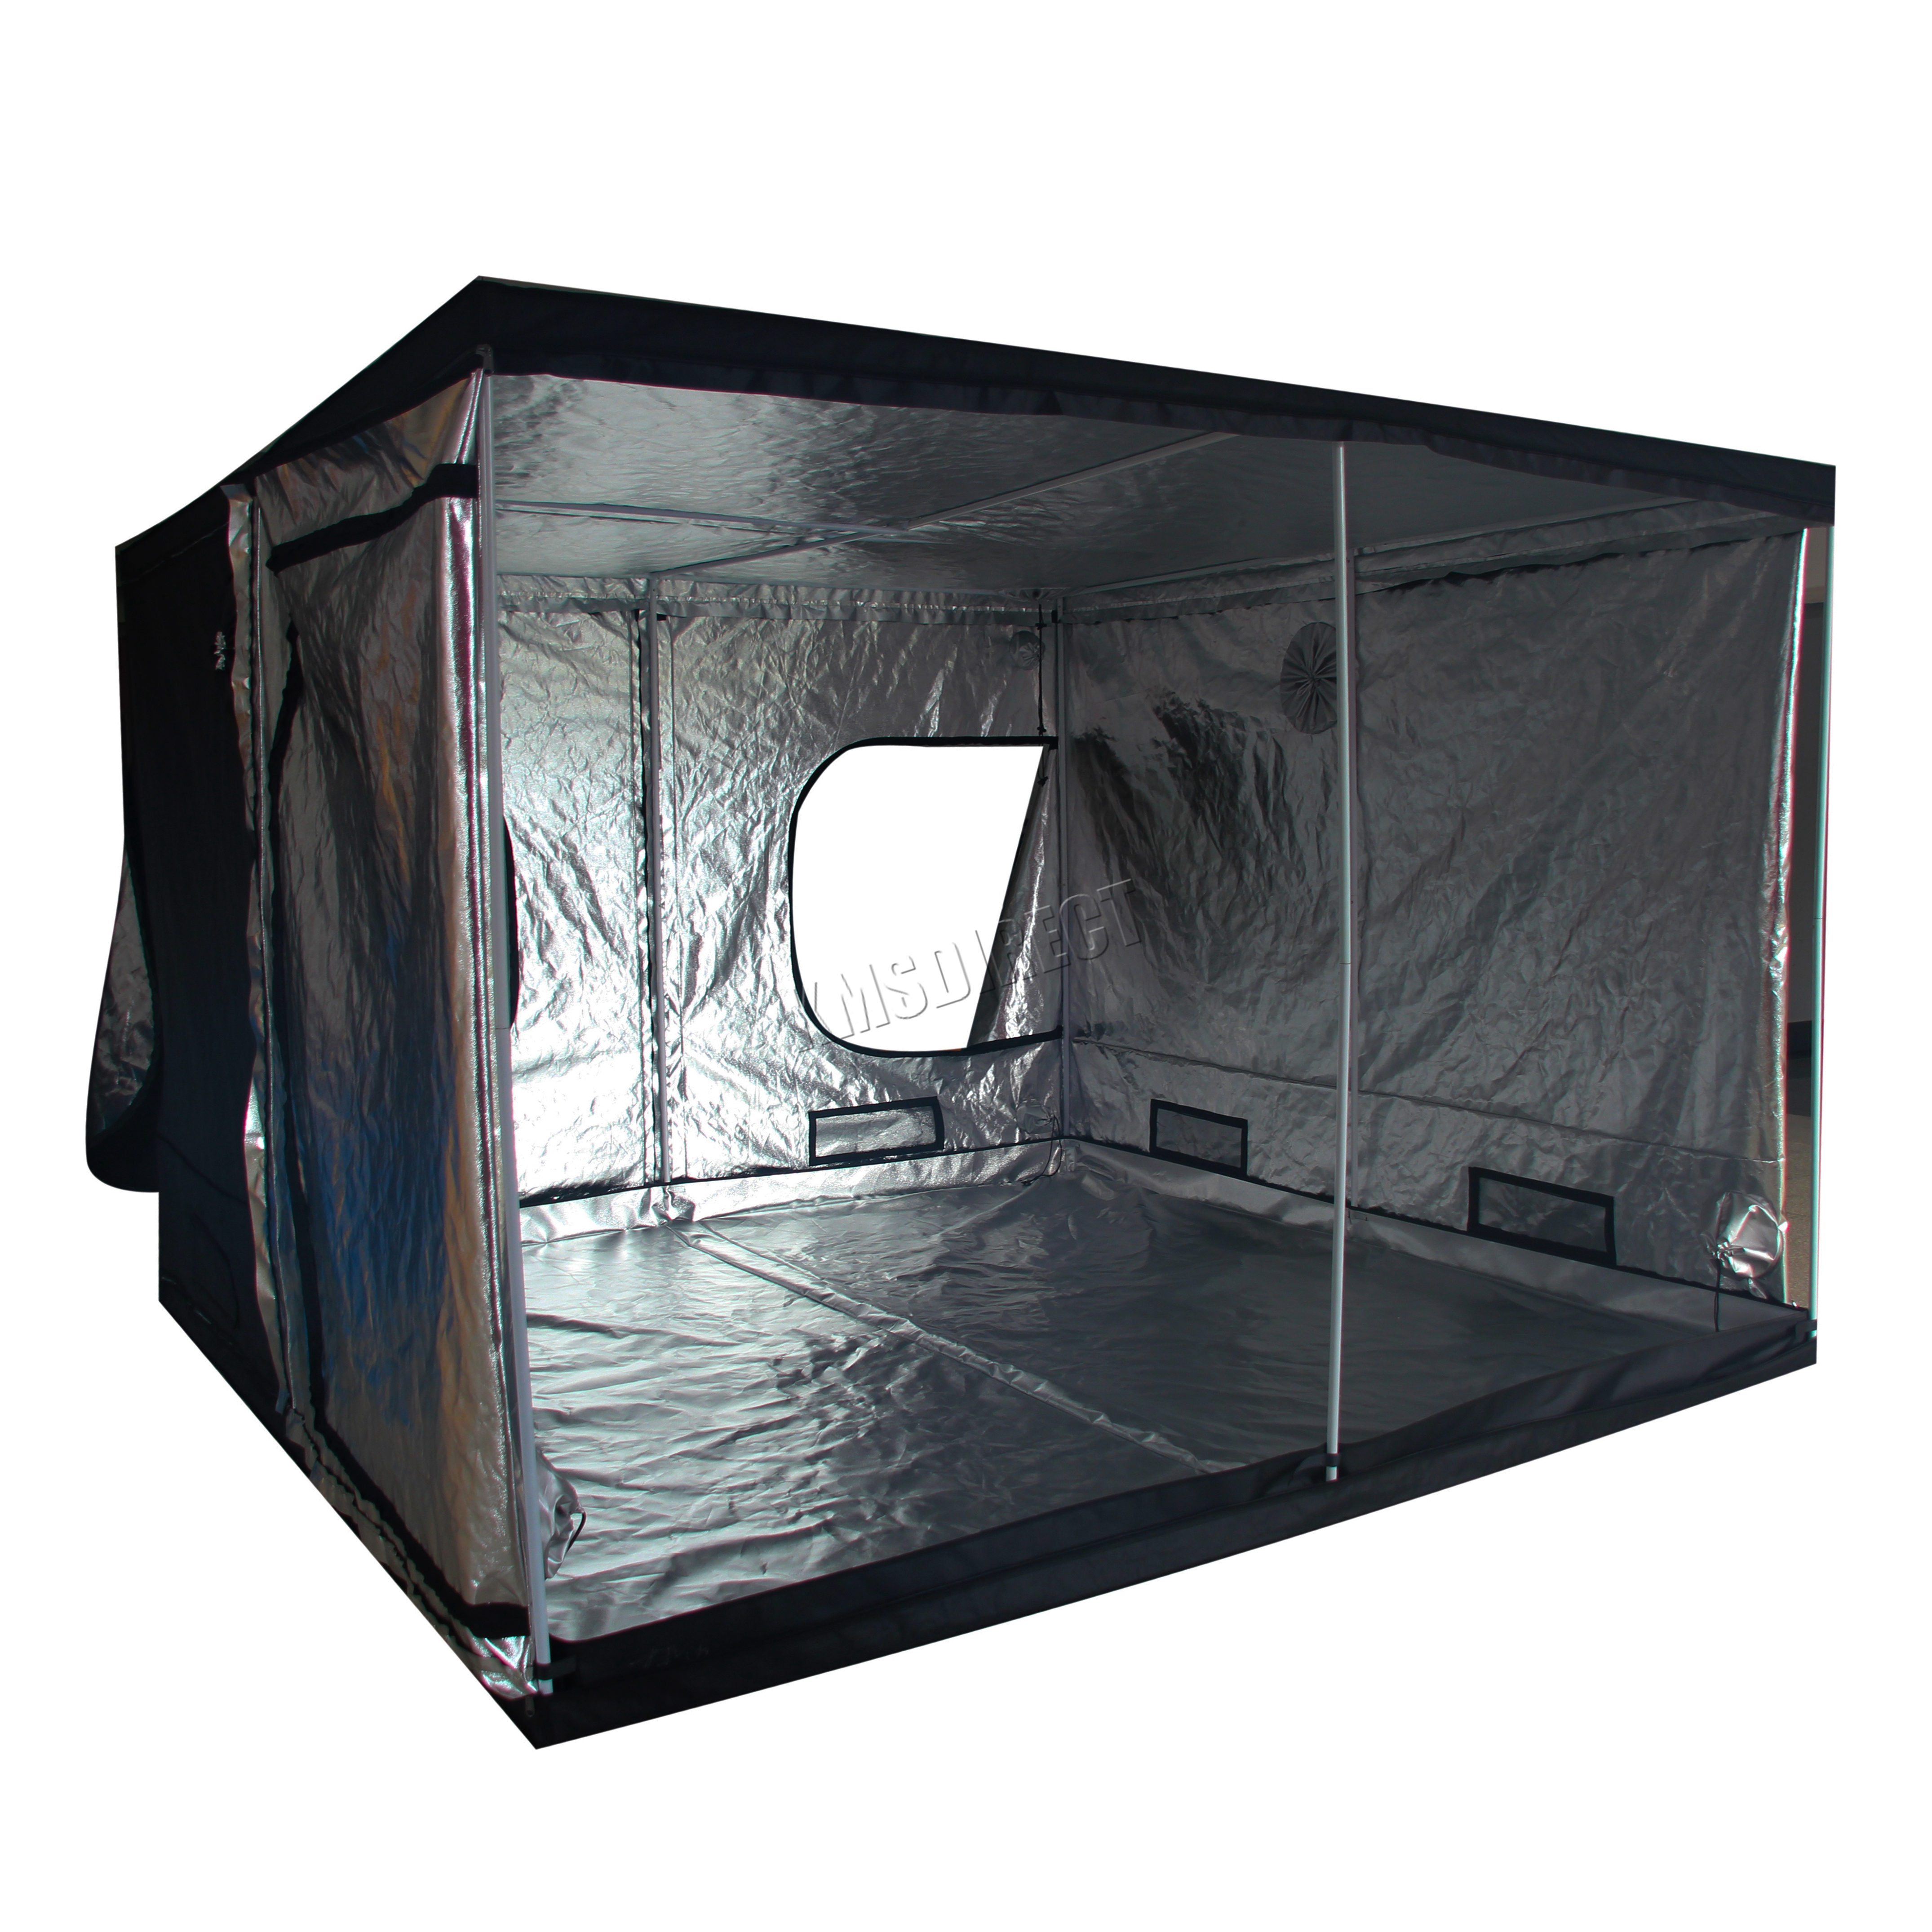 Sentinel Indoor Portable Grow Tent Box Silver Mylar Hydroponics Bud Green Room New Design  sc 1 st  eBay & Indoor Portable Grow Tent Box Silver Mylar Hydroponics Bud Green ...